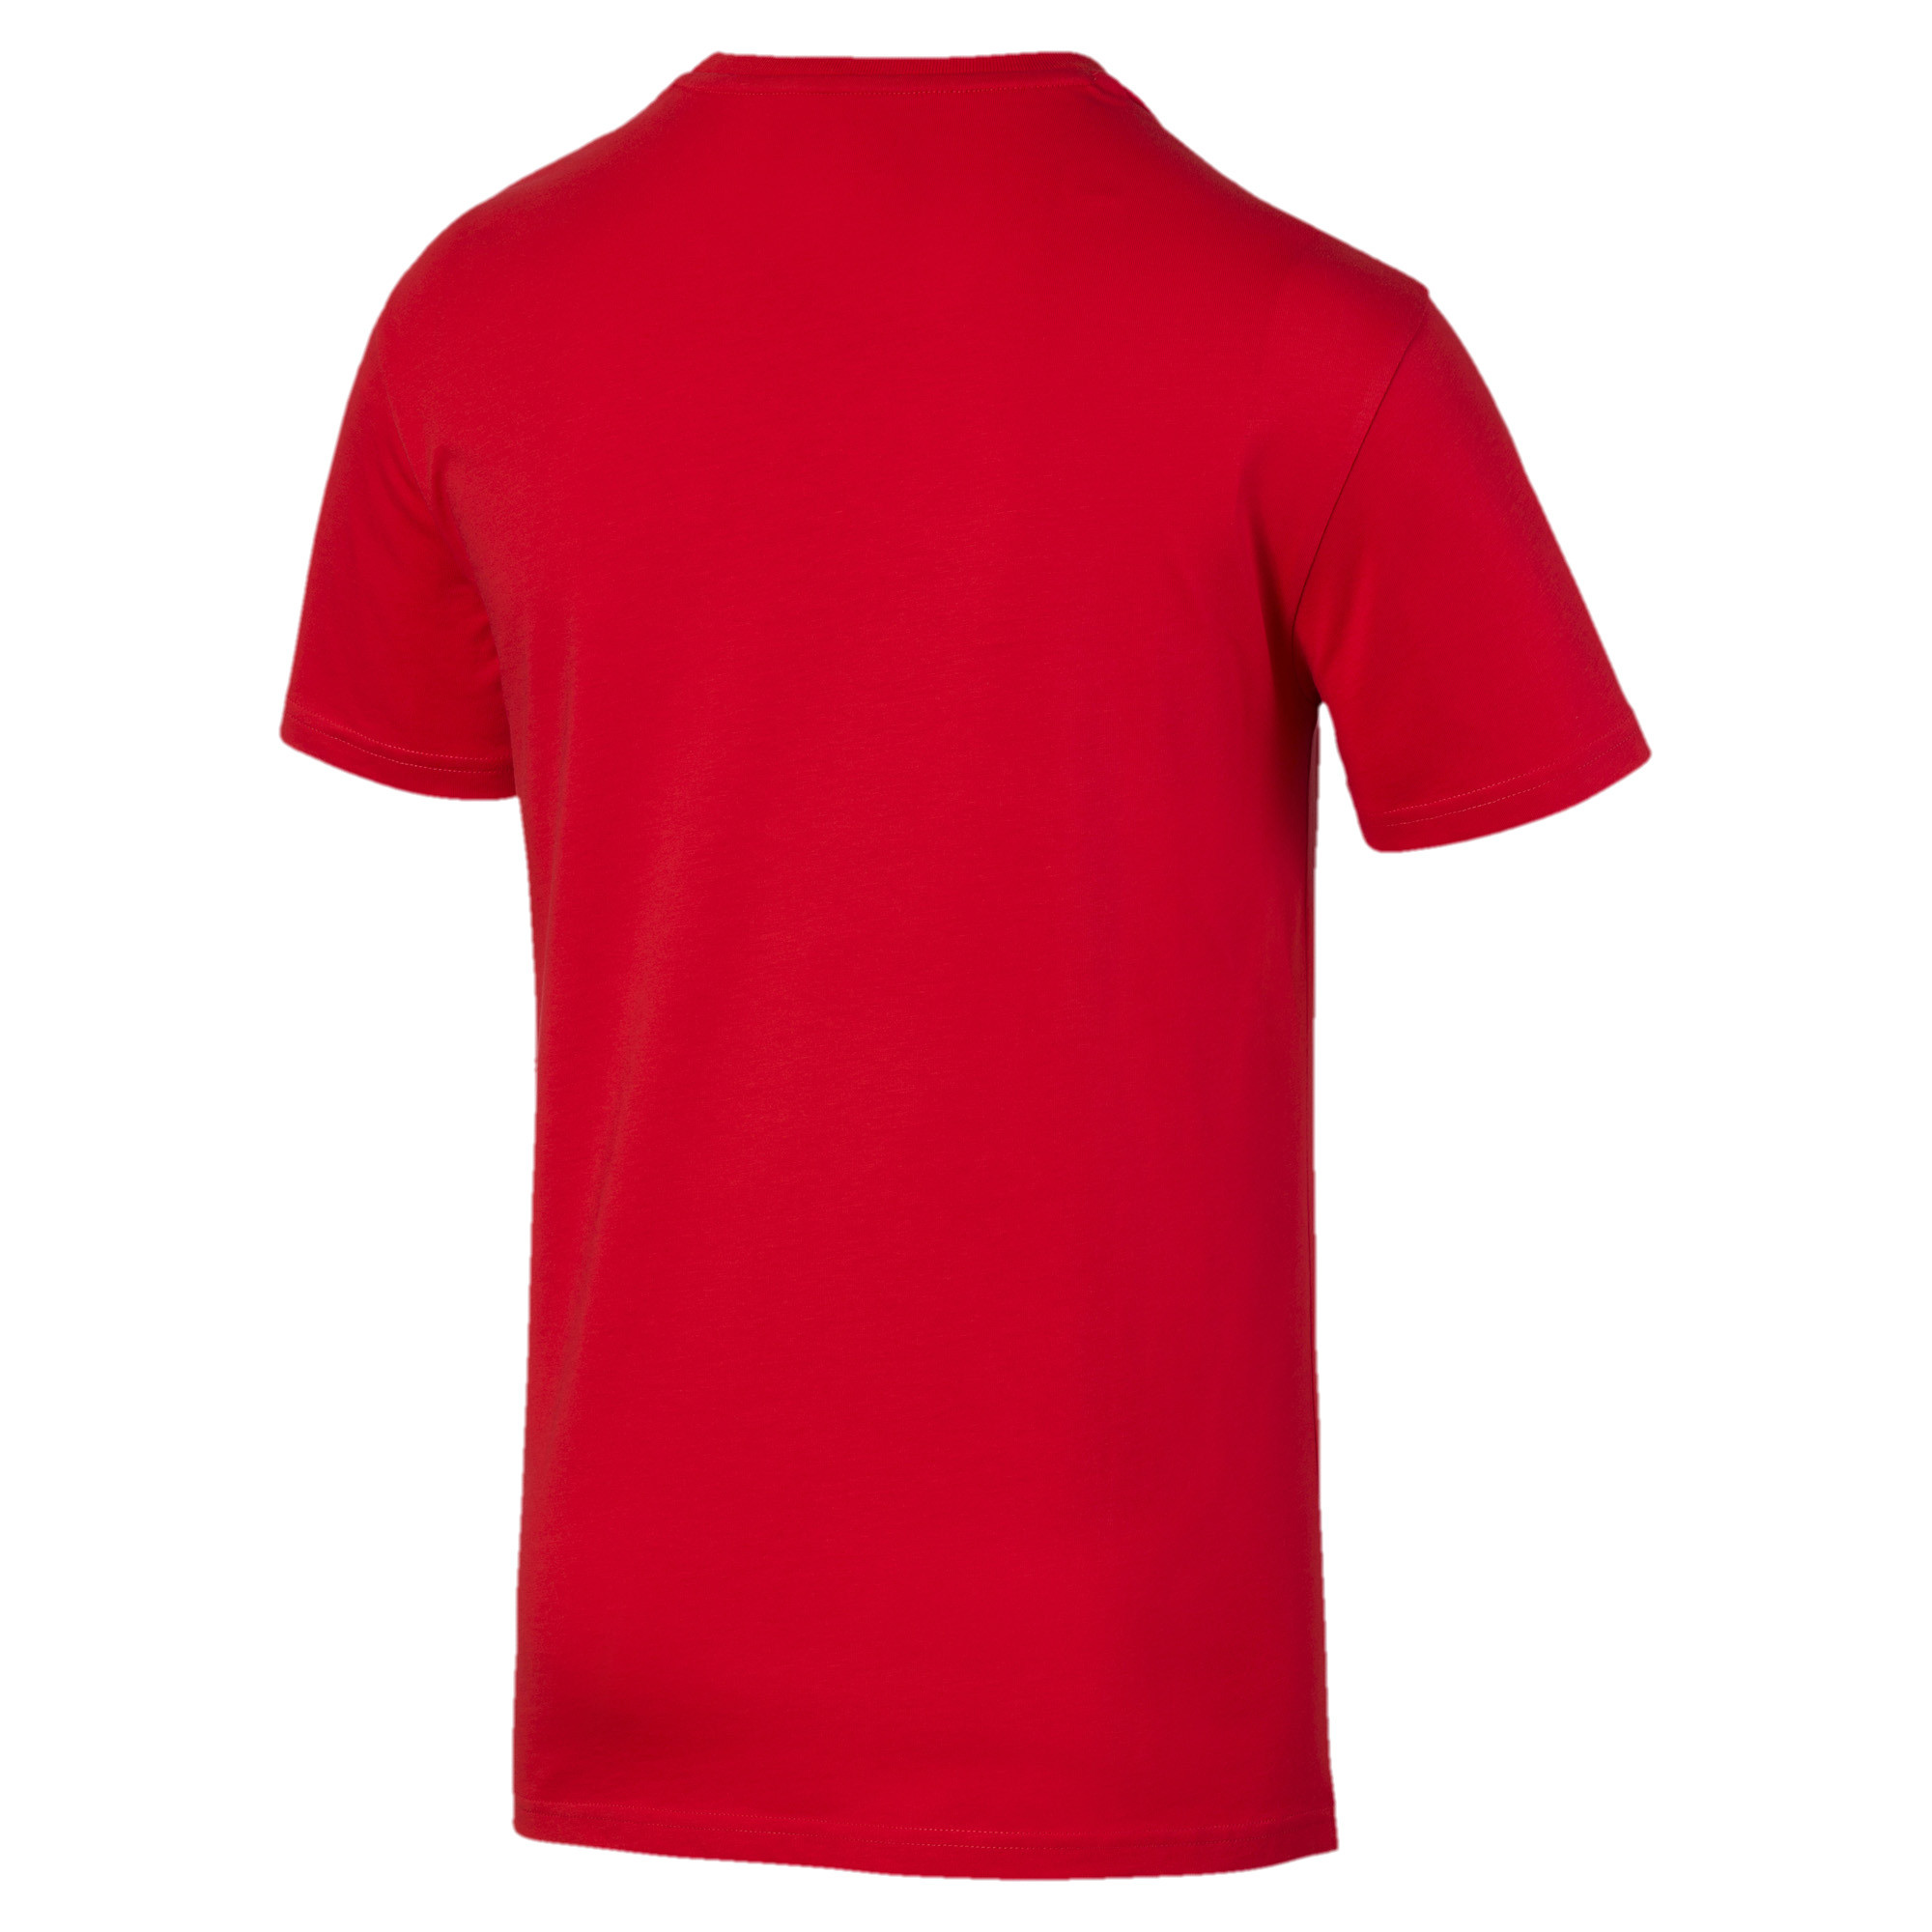 PUMA-Rebel-Bold-Men-039-s-Tee-Men-Tee-Basics thumbnail 3